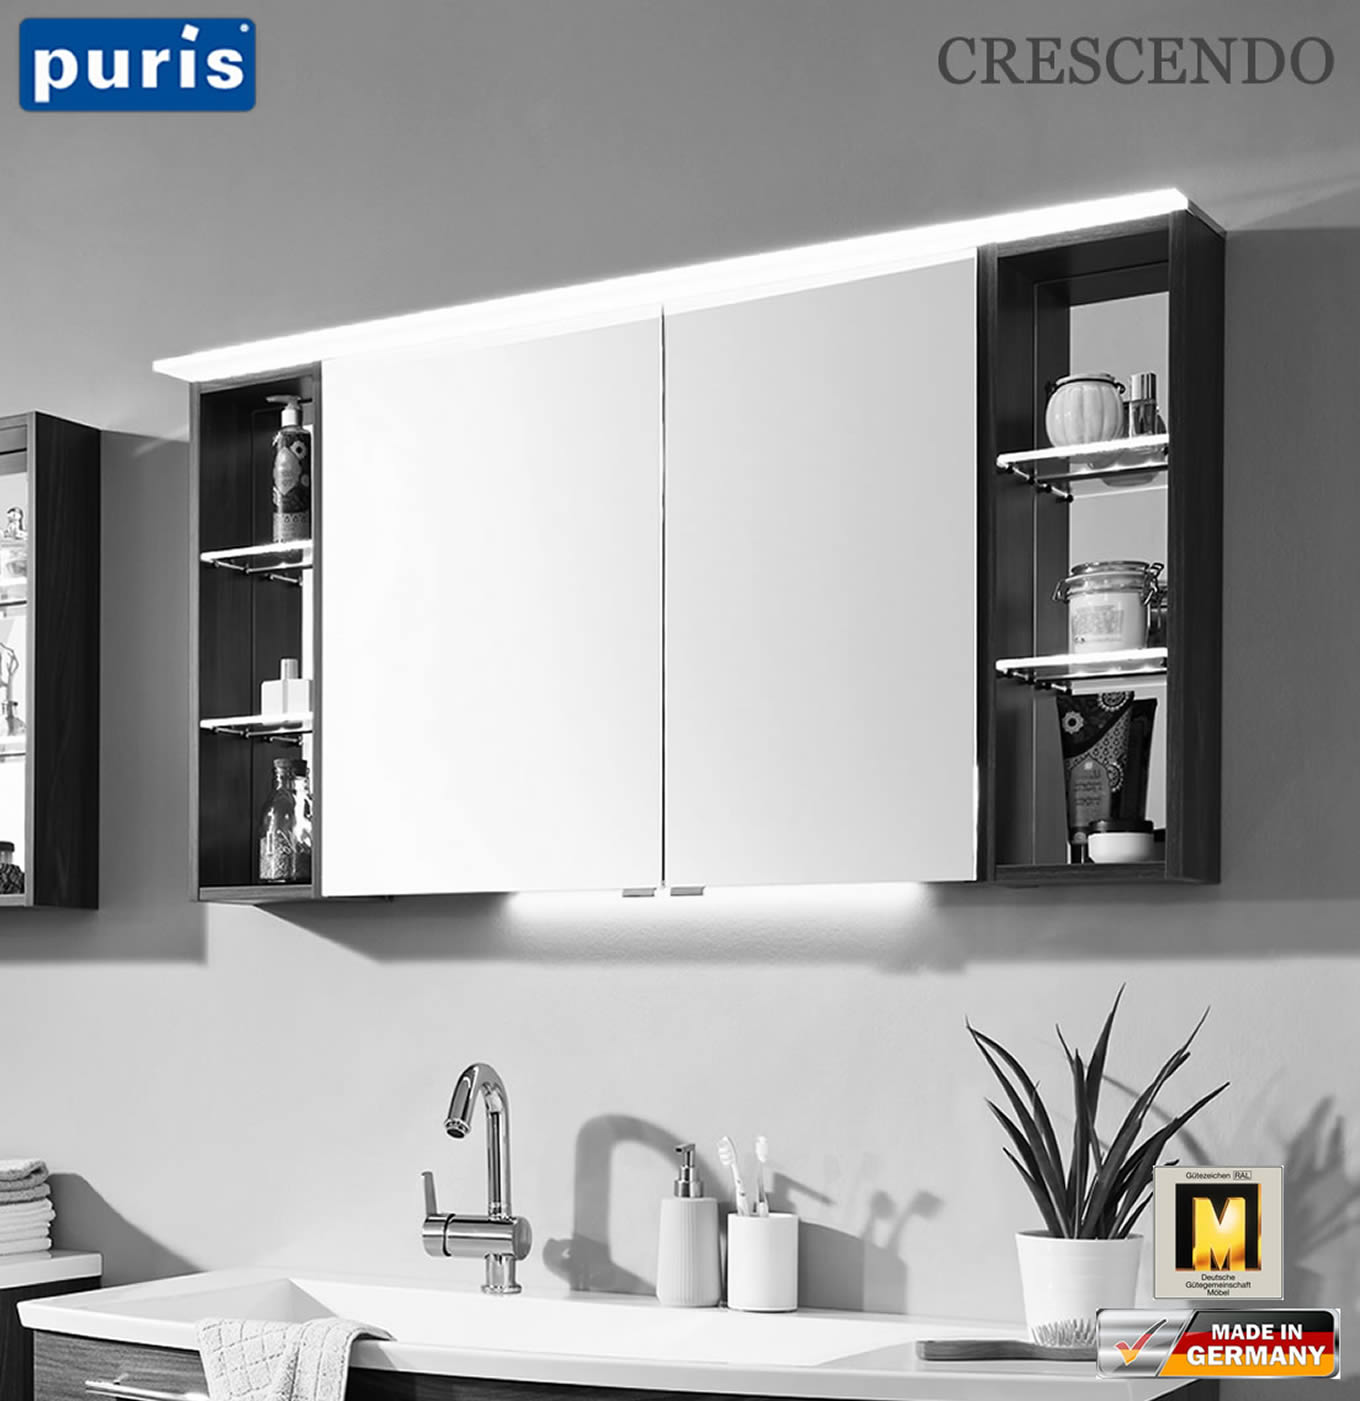 puris crescendo spiegelschrank 120 cm mit led. Black Bedroom Furniture Sets. Home Design Ideas